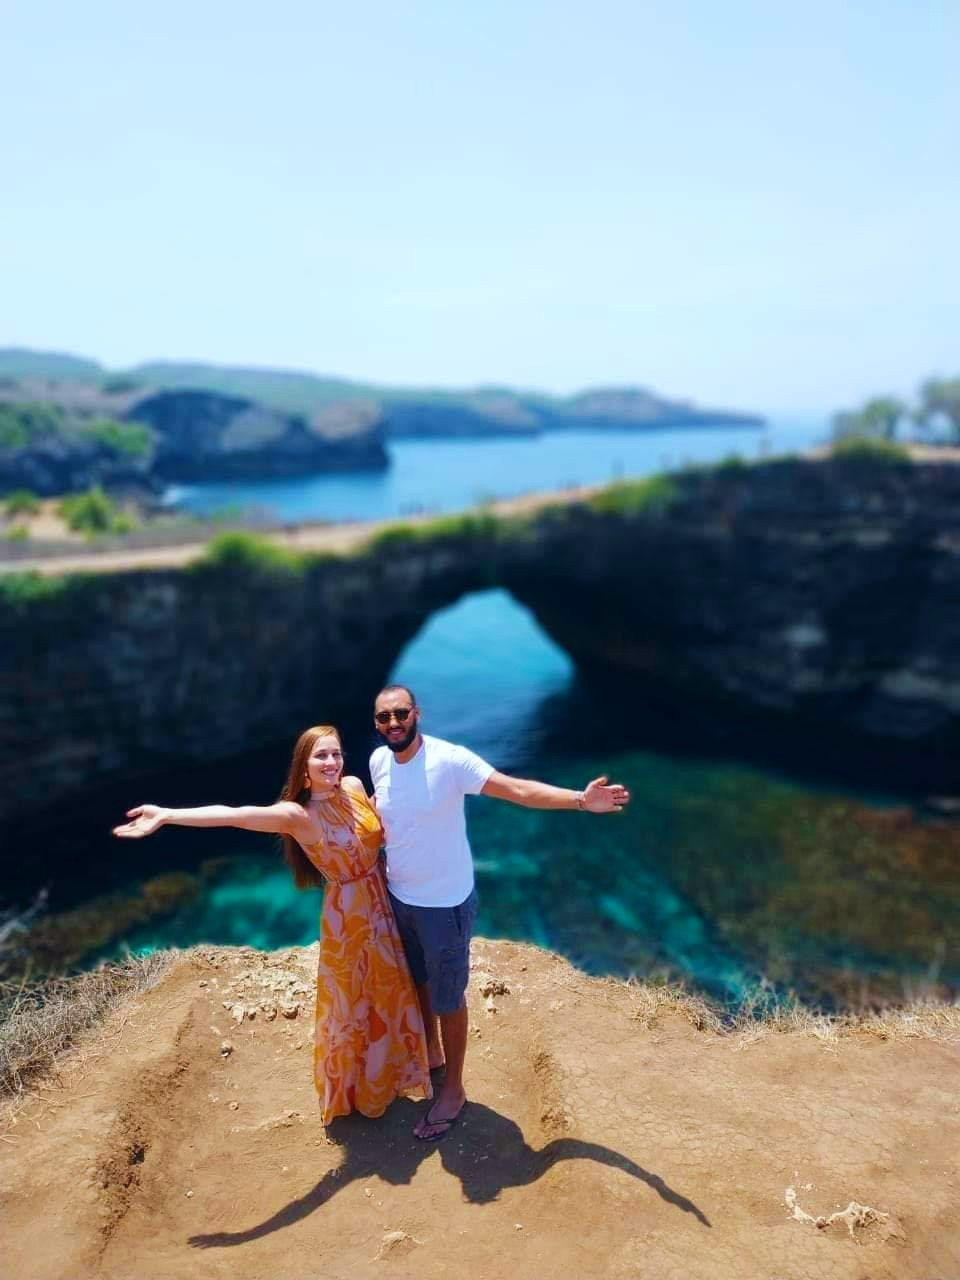 Broken Beach Nusa Penida Tour Packages